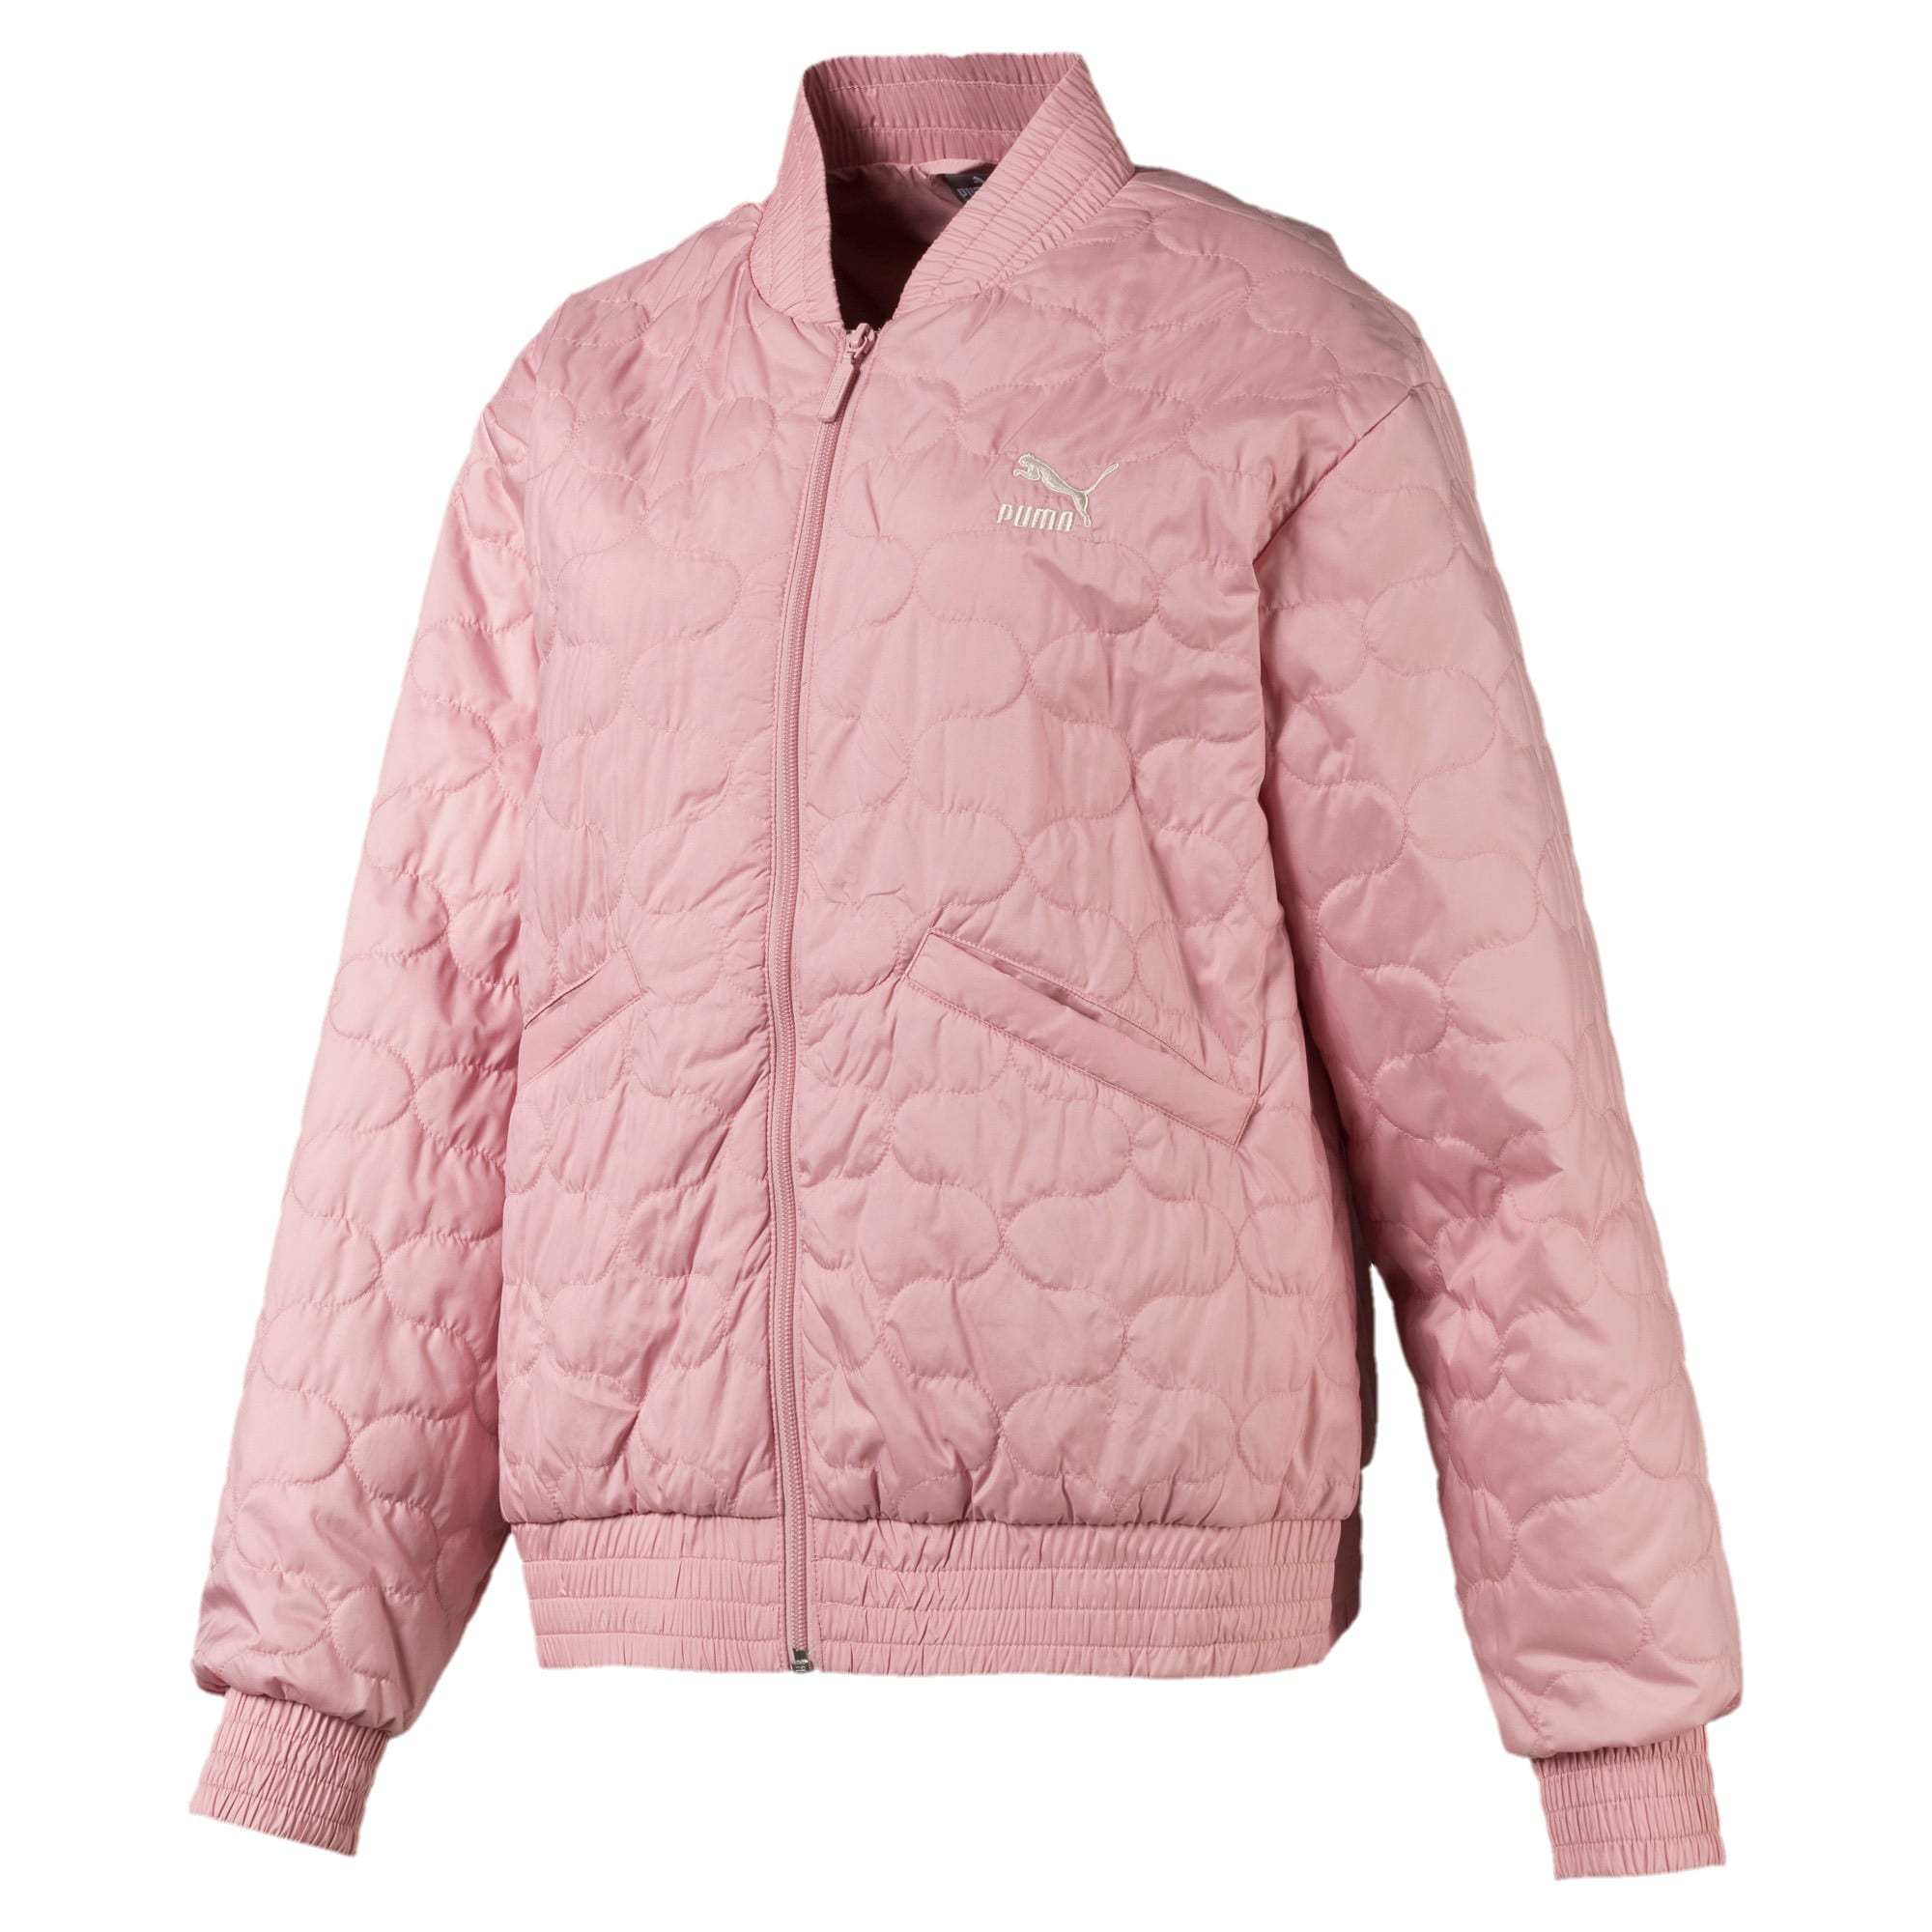 Thumbnail 1 of Woven Women's Bomber Jacket, Bridal Rose, medium